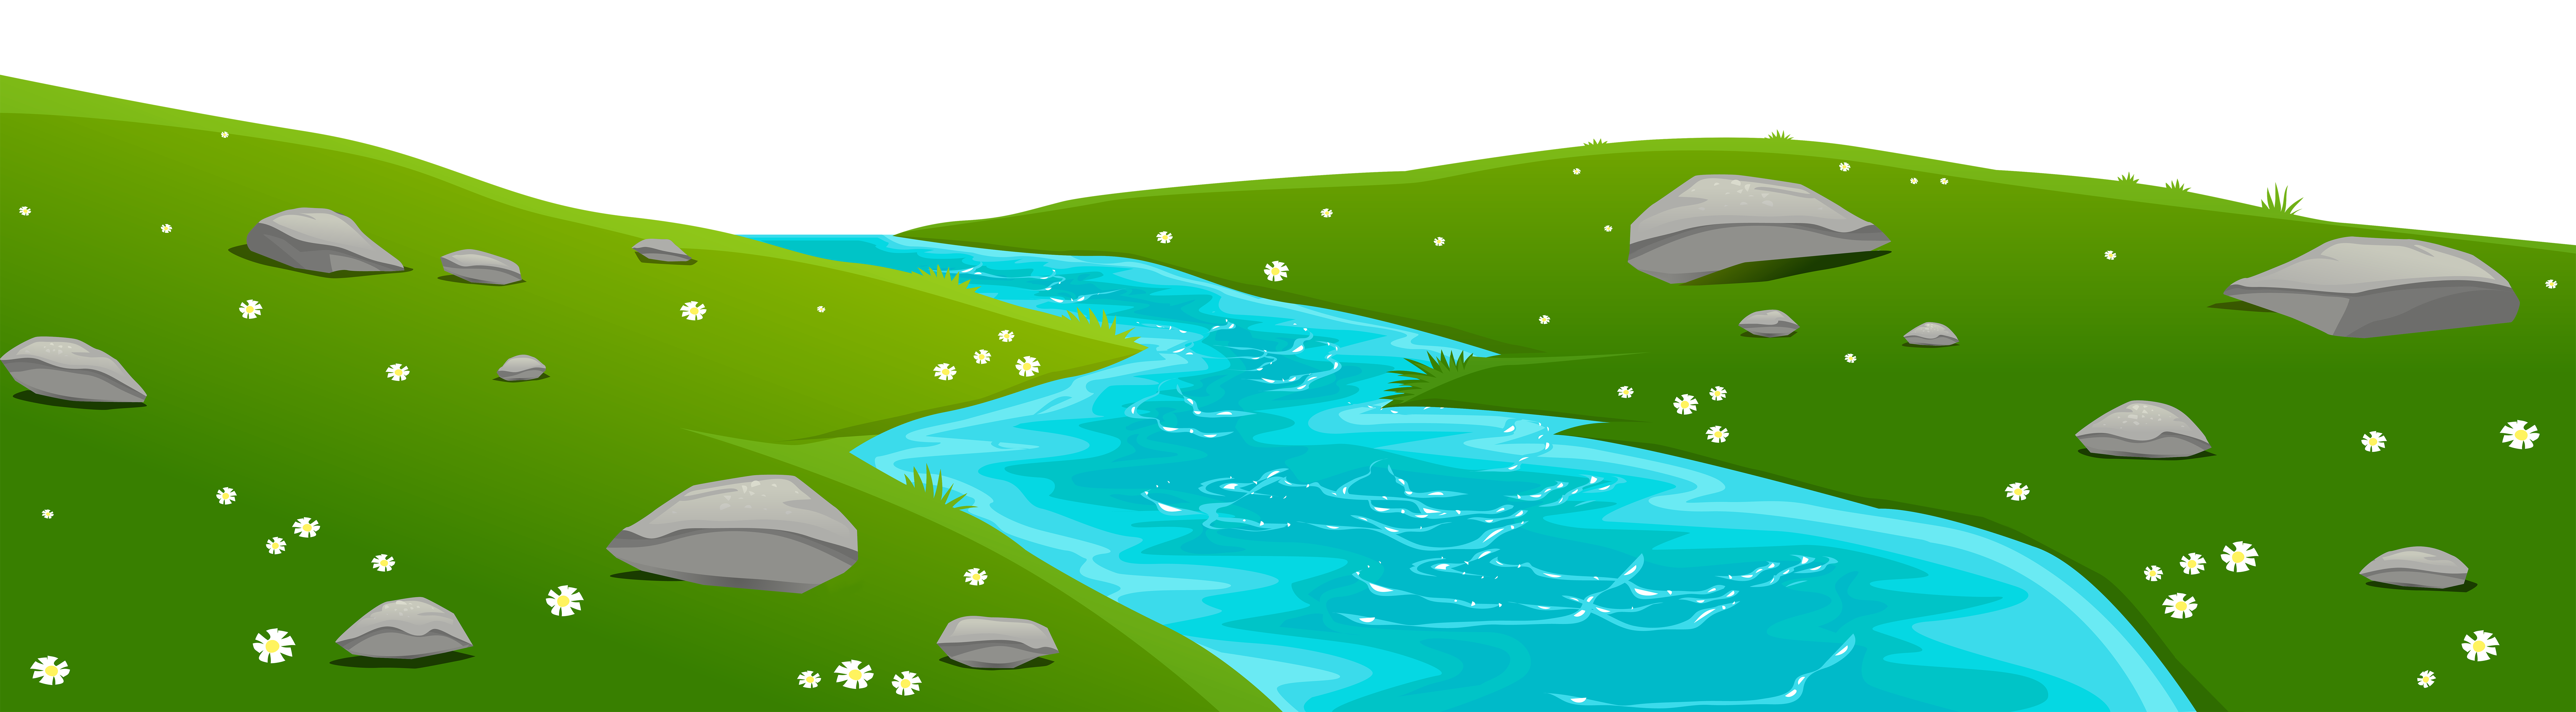 jpg library library Drawing nature creek. River clipart clipground view